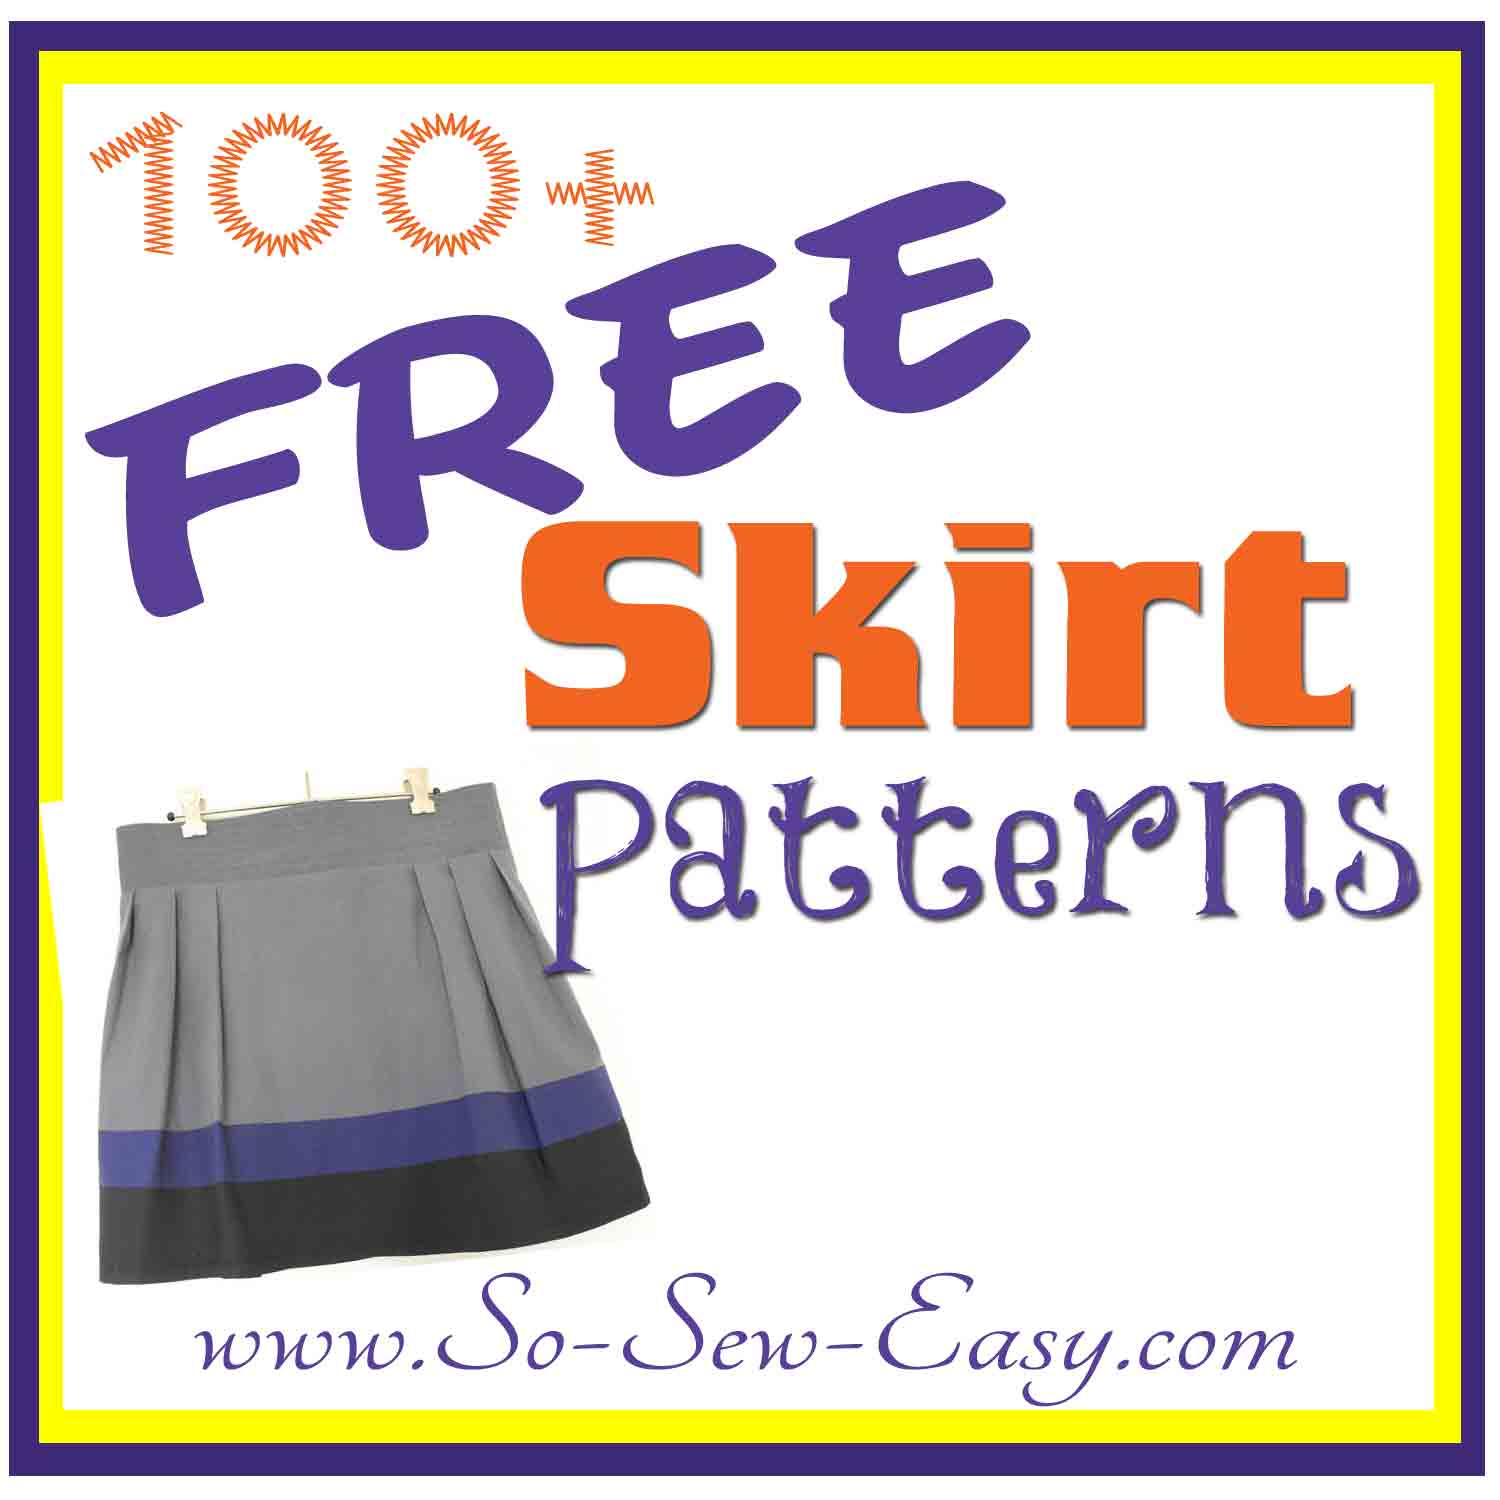 Free Skirt Sewing Patterns – over 100